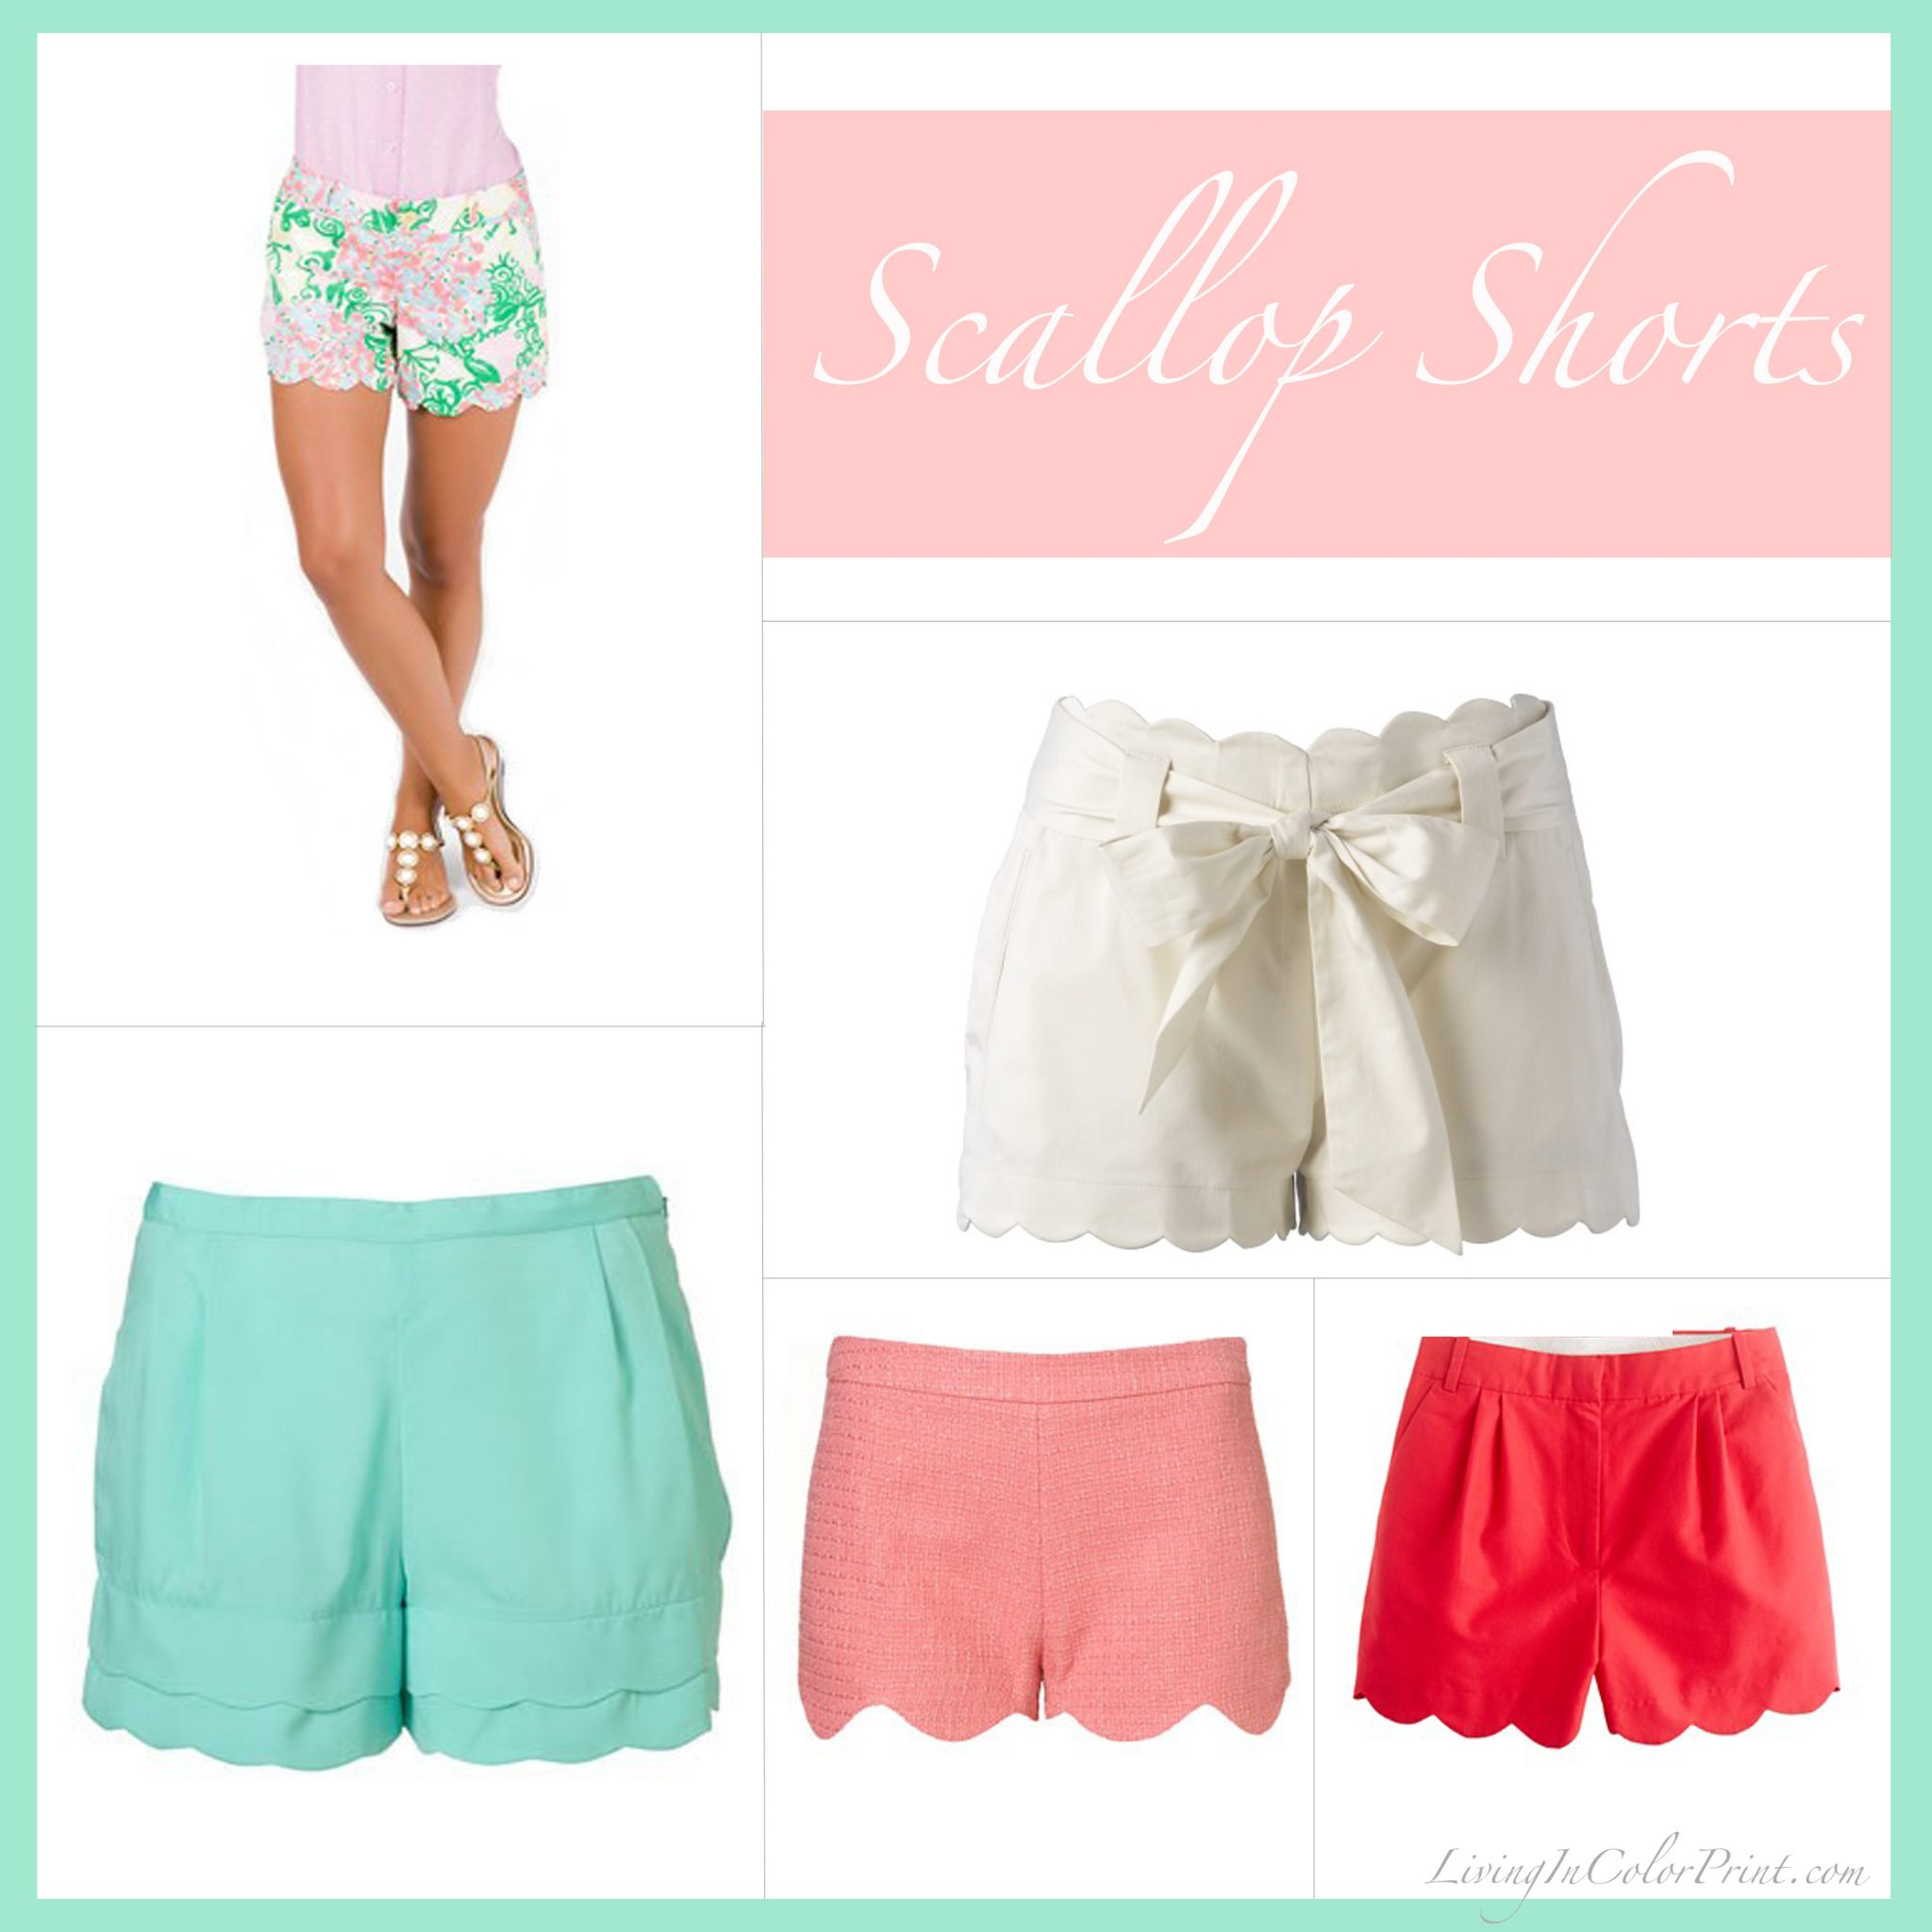 Scallop Shorts Trend